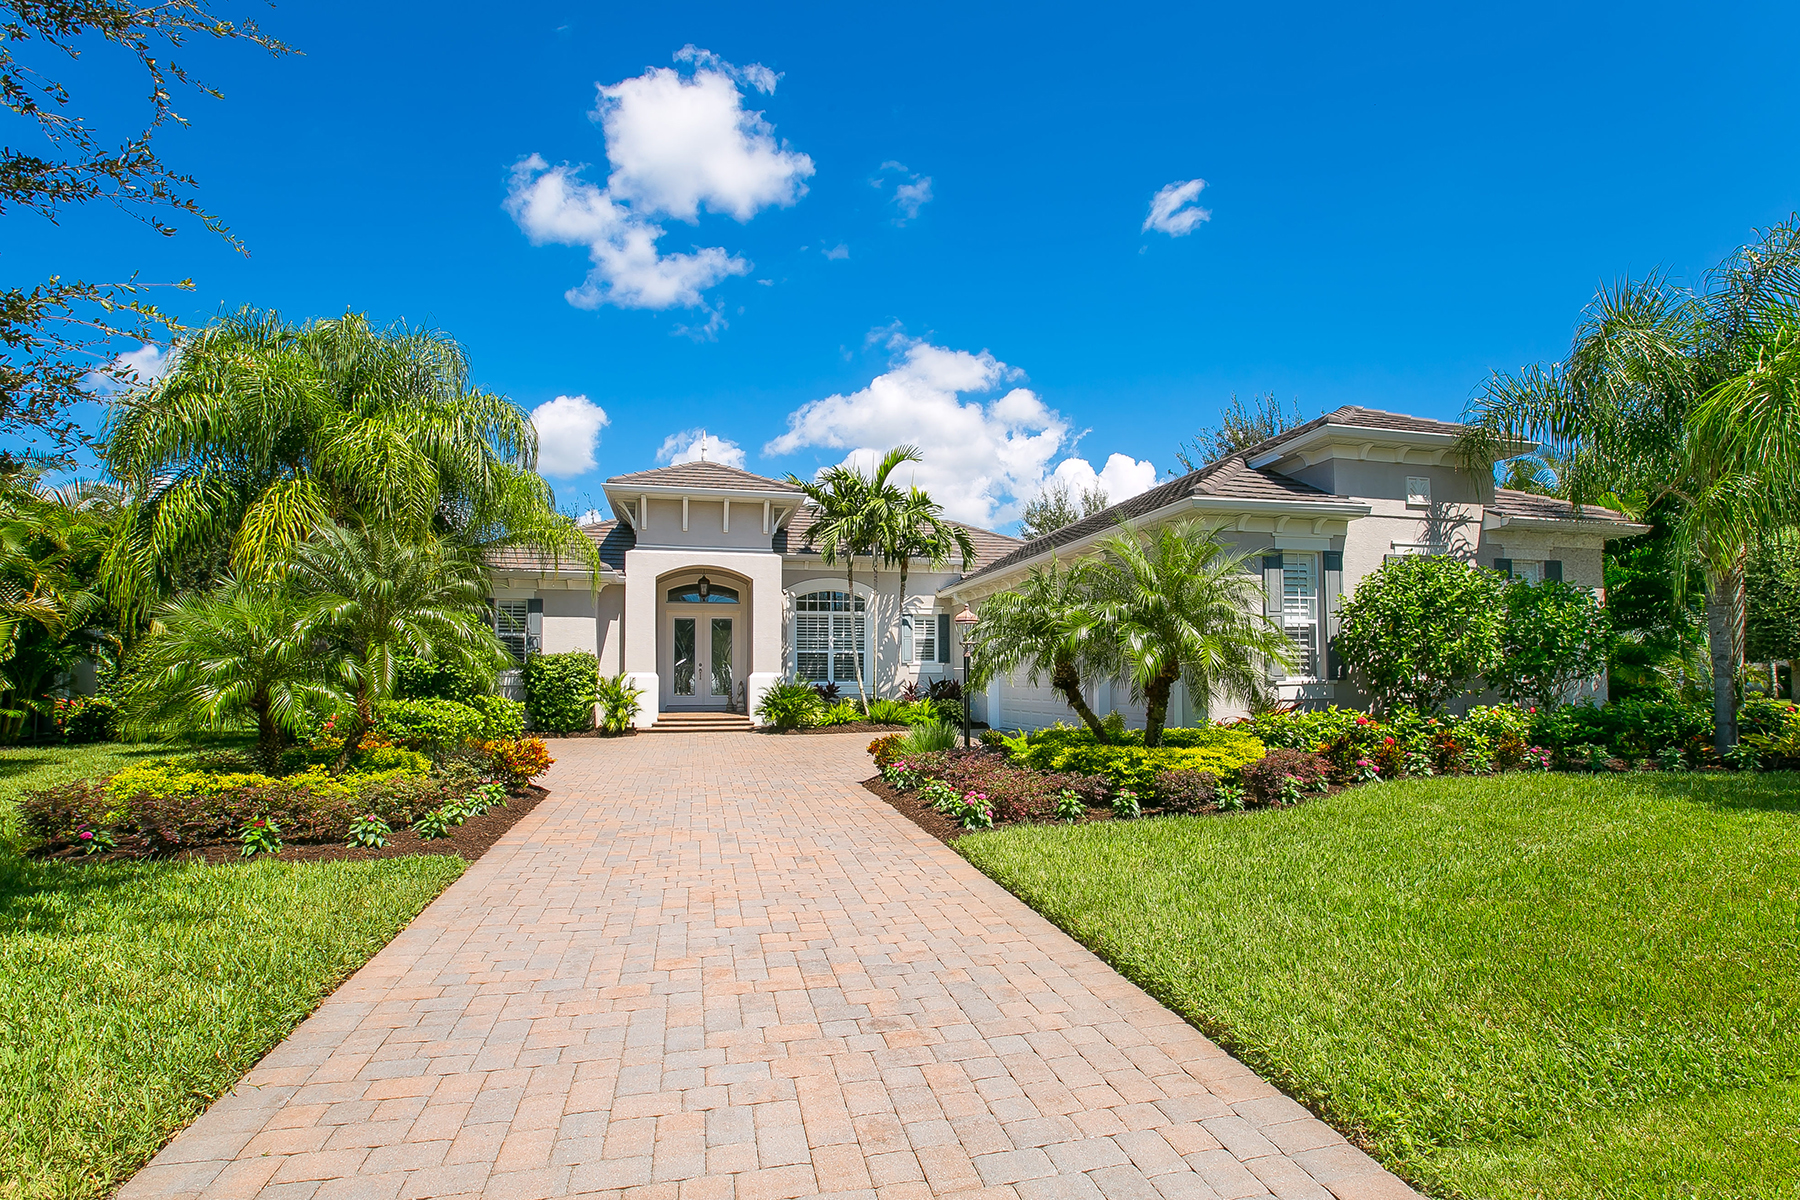 Single Family Home for Sale at THE COUNTRY CLUB - LAKEWOOD RANCH 12315 Newcastle Pl Lakewood Ranch, Florida 34202 United States